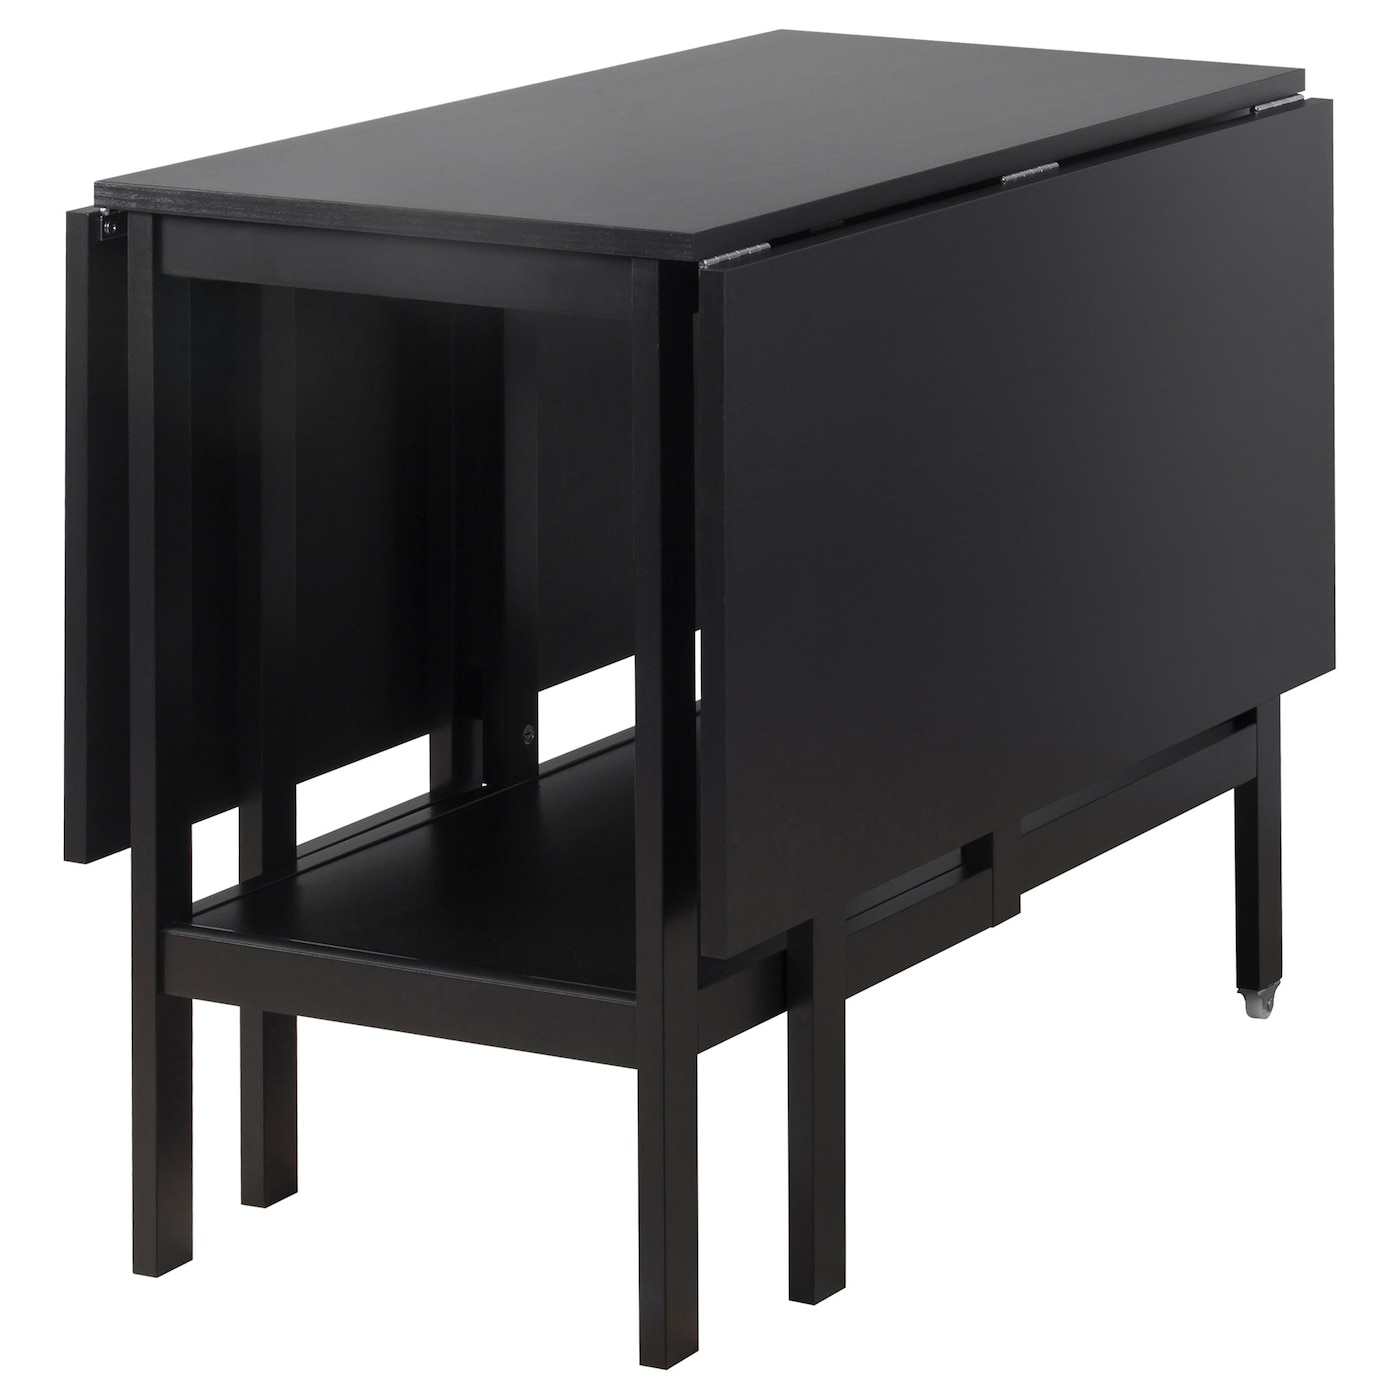 barsviken drop leaf table black 45 90 135x93 cm ikea. Black Bedroom Furniture Sets. Home Design Ideas